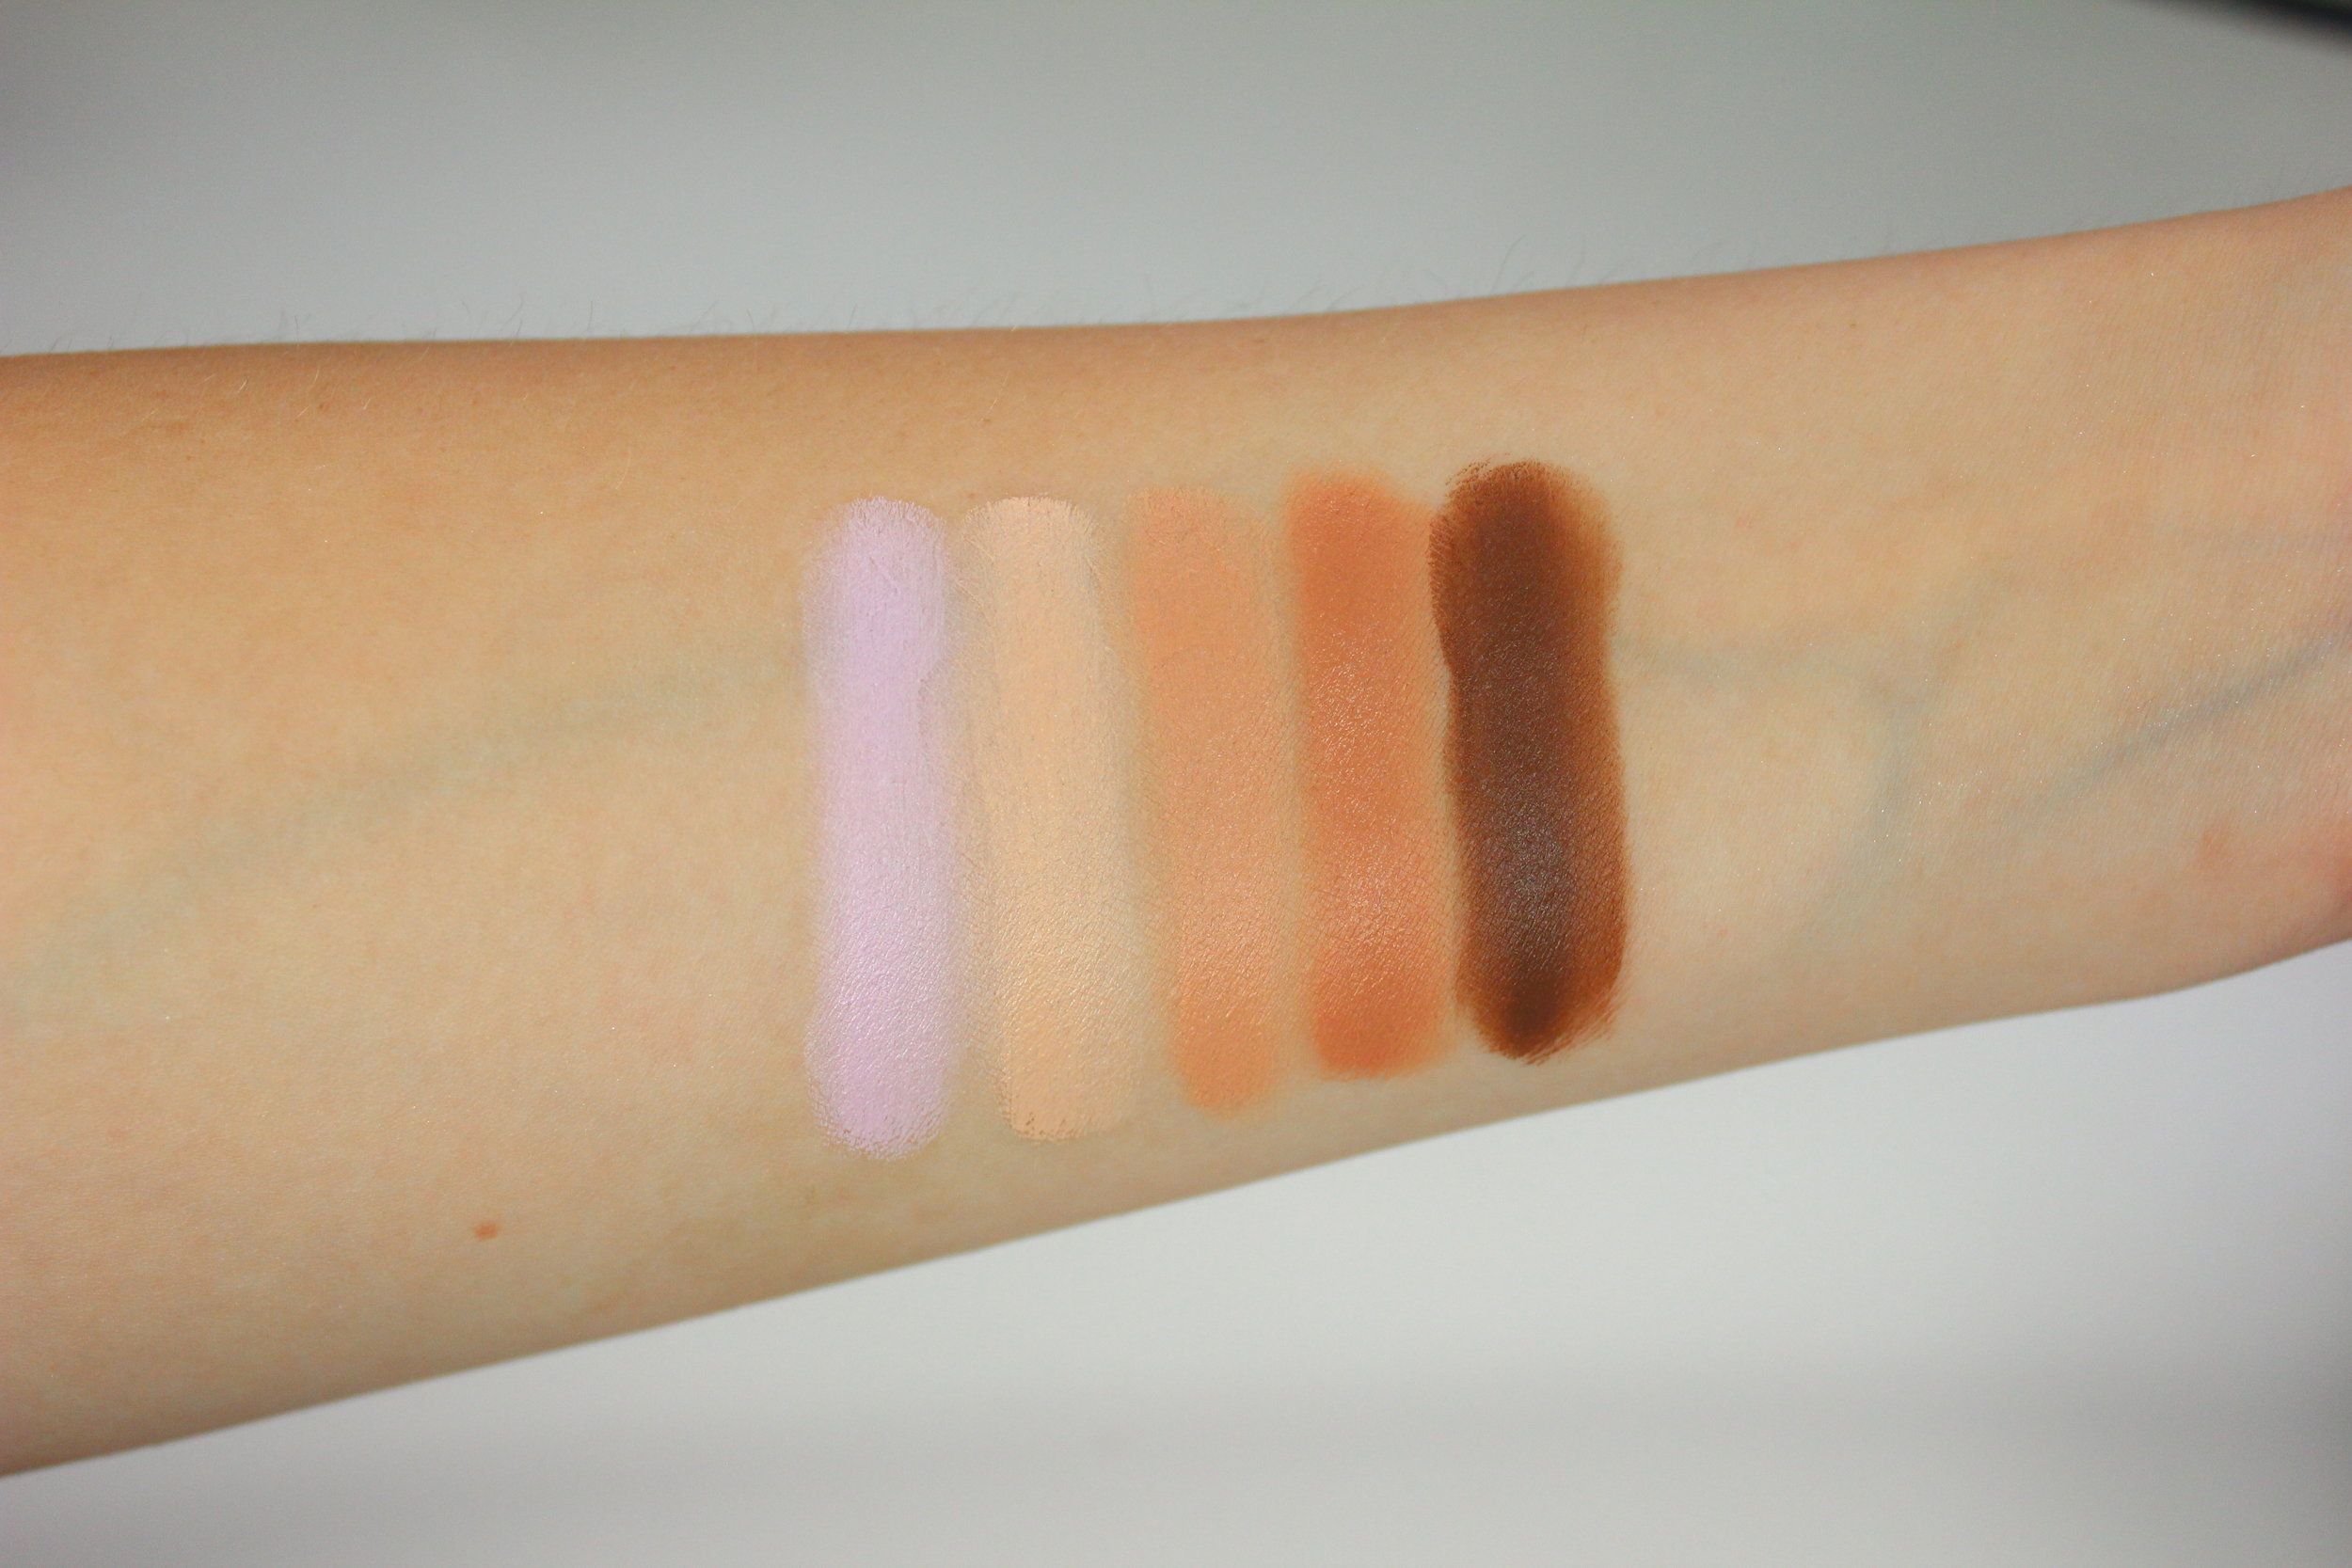 Sedona Lace Concealer Swatches 3